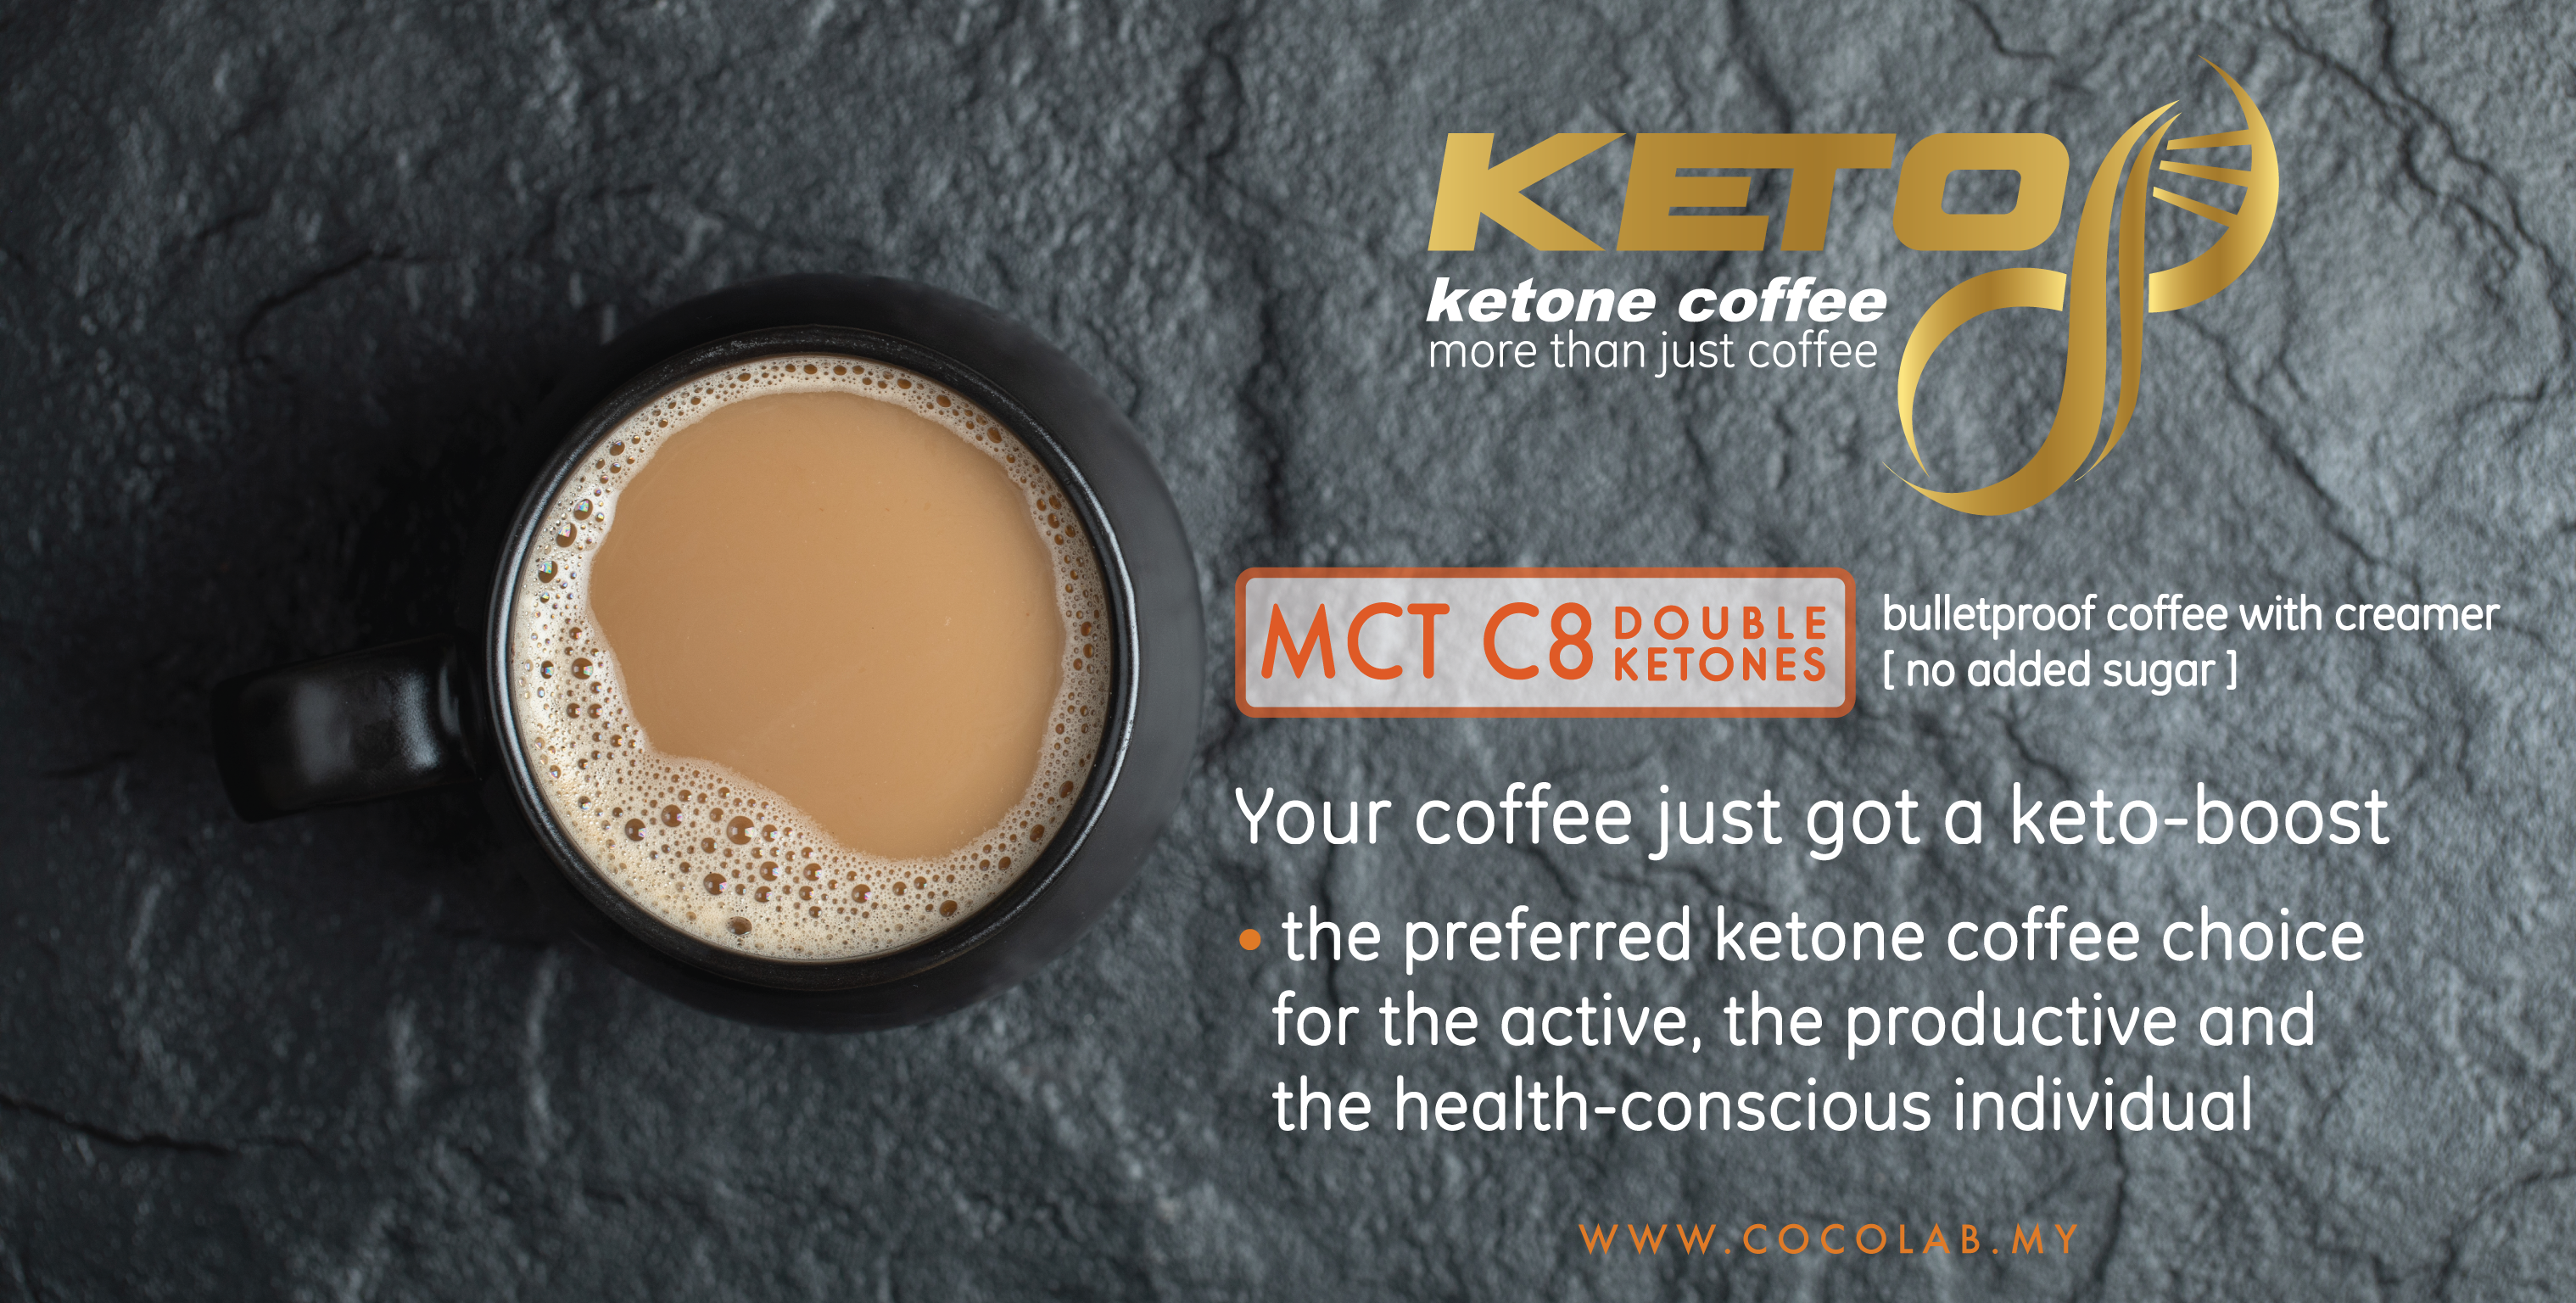 COCOLAB Keto8 Coffee bulletproof coffee for the active and health conscious